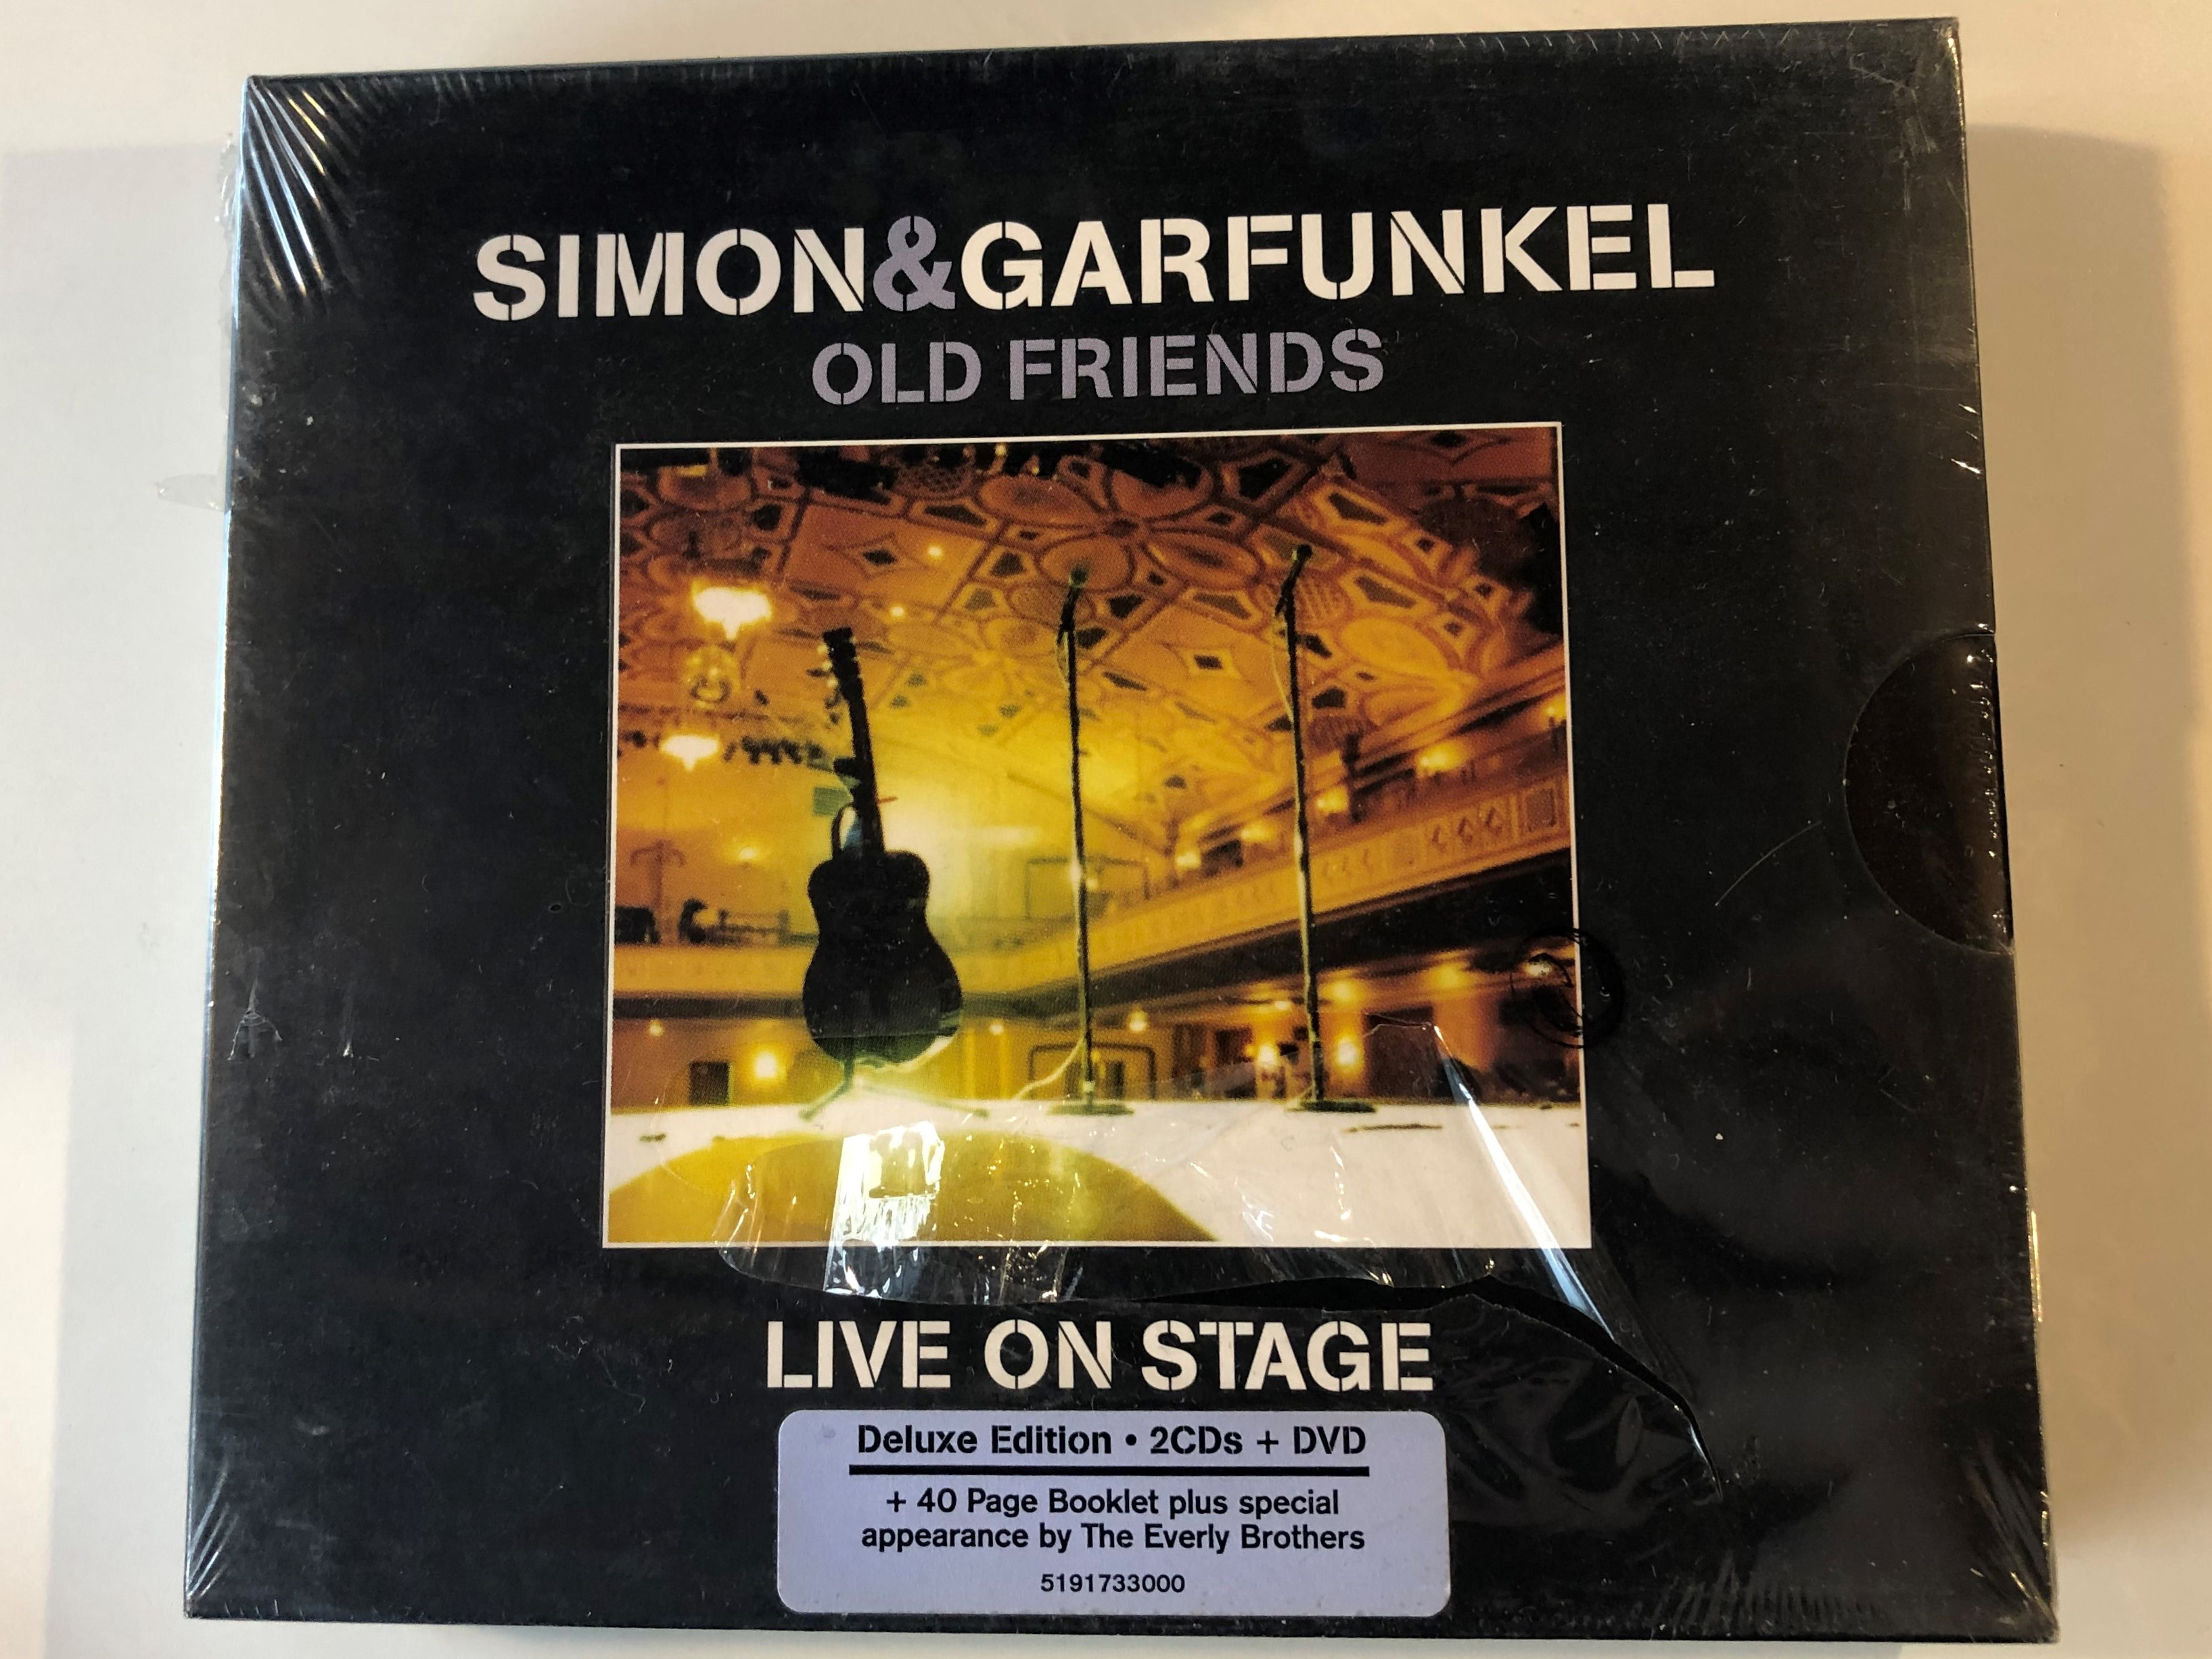 simon-garfunkel-old-friends-live-on-stage-deluxe-edition-columbia-2x-audio-cd-dvd-2004-5191733000-1-.jpg